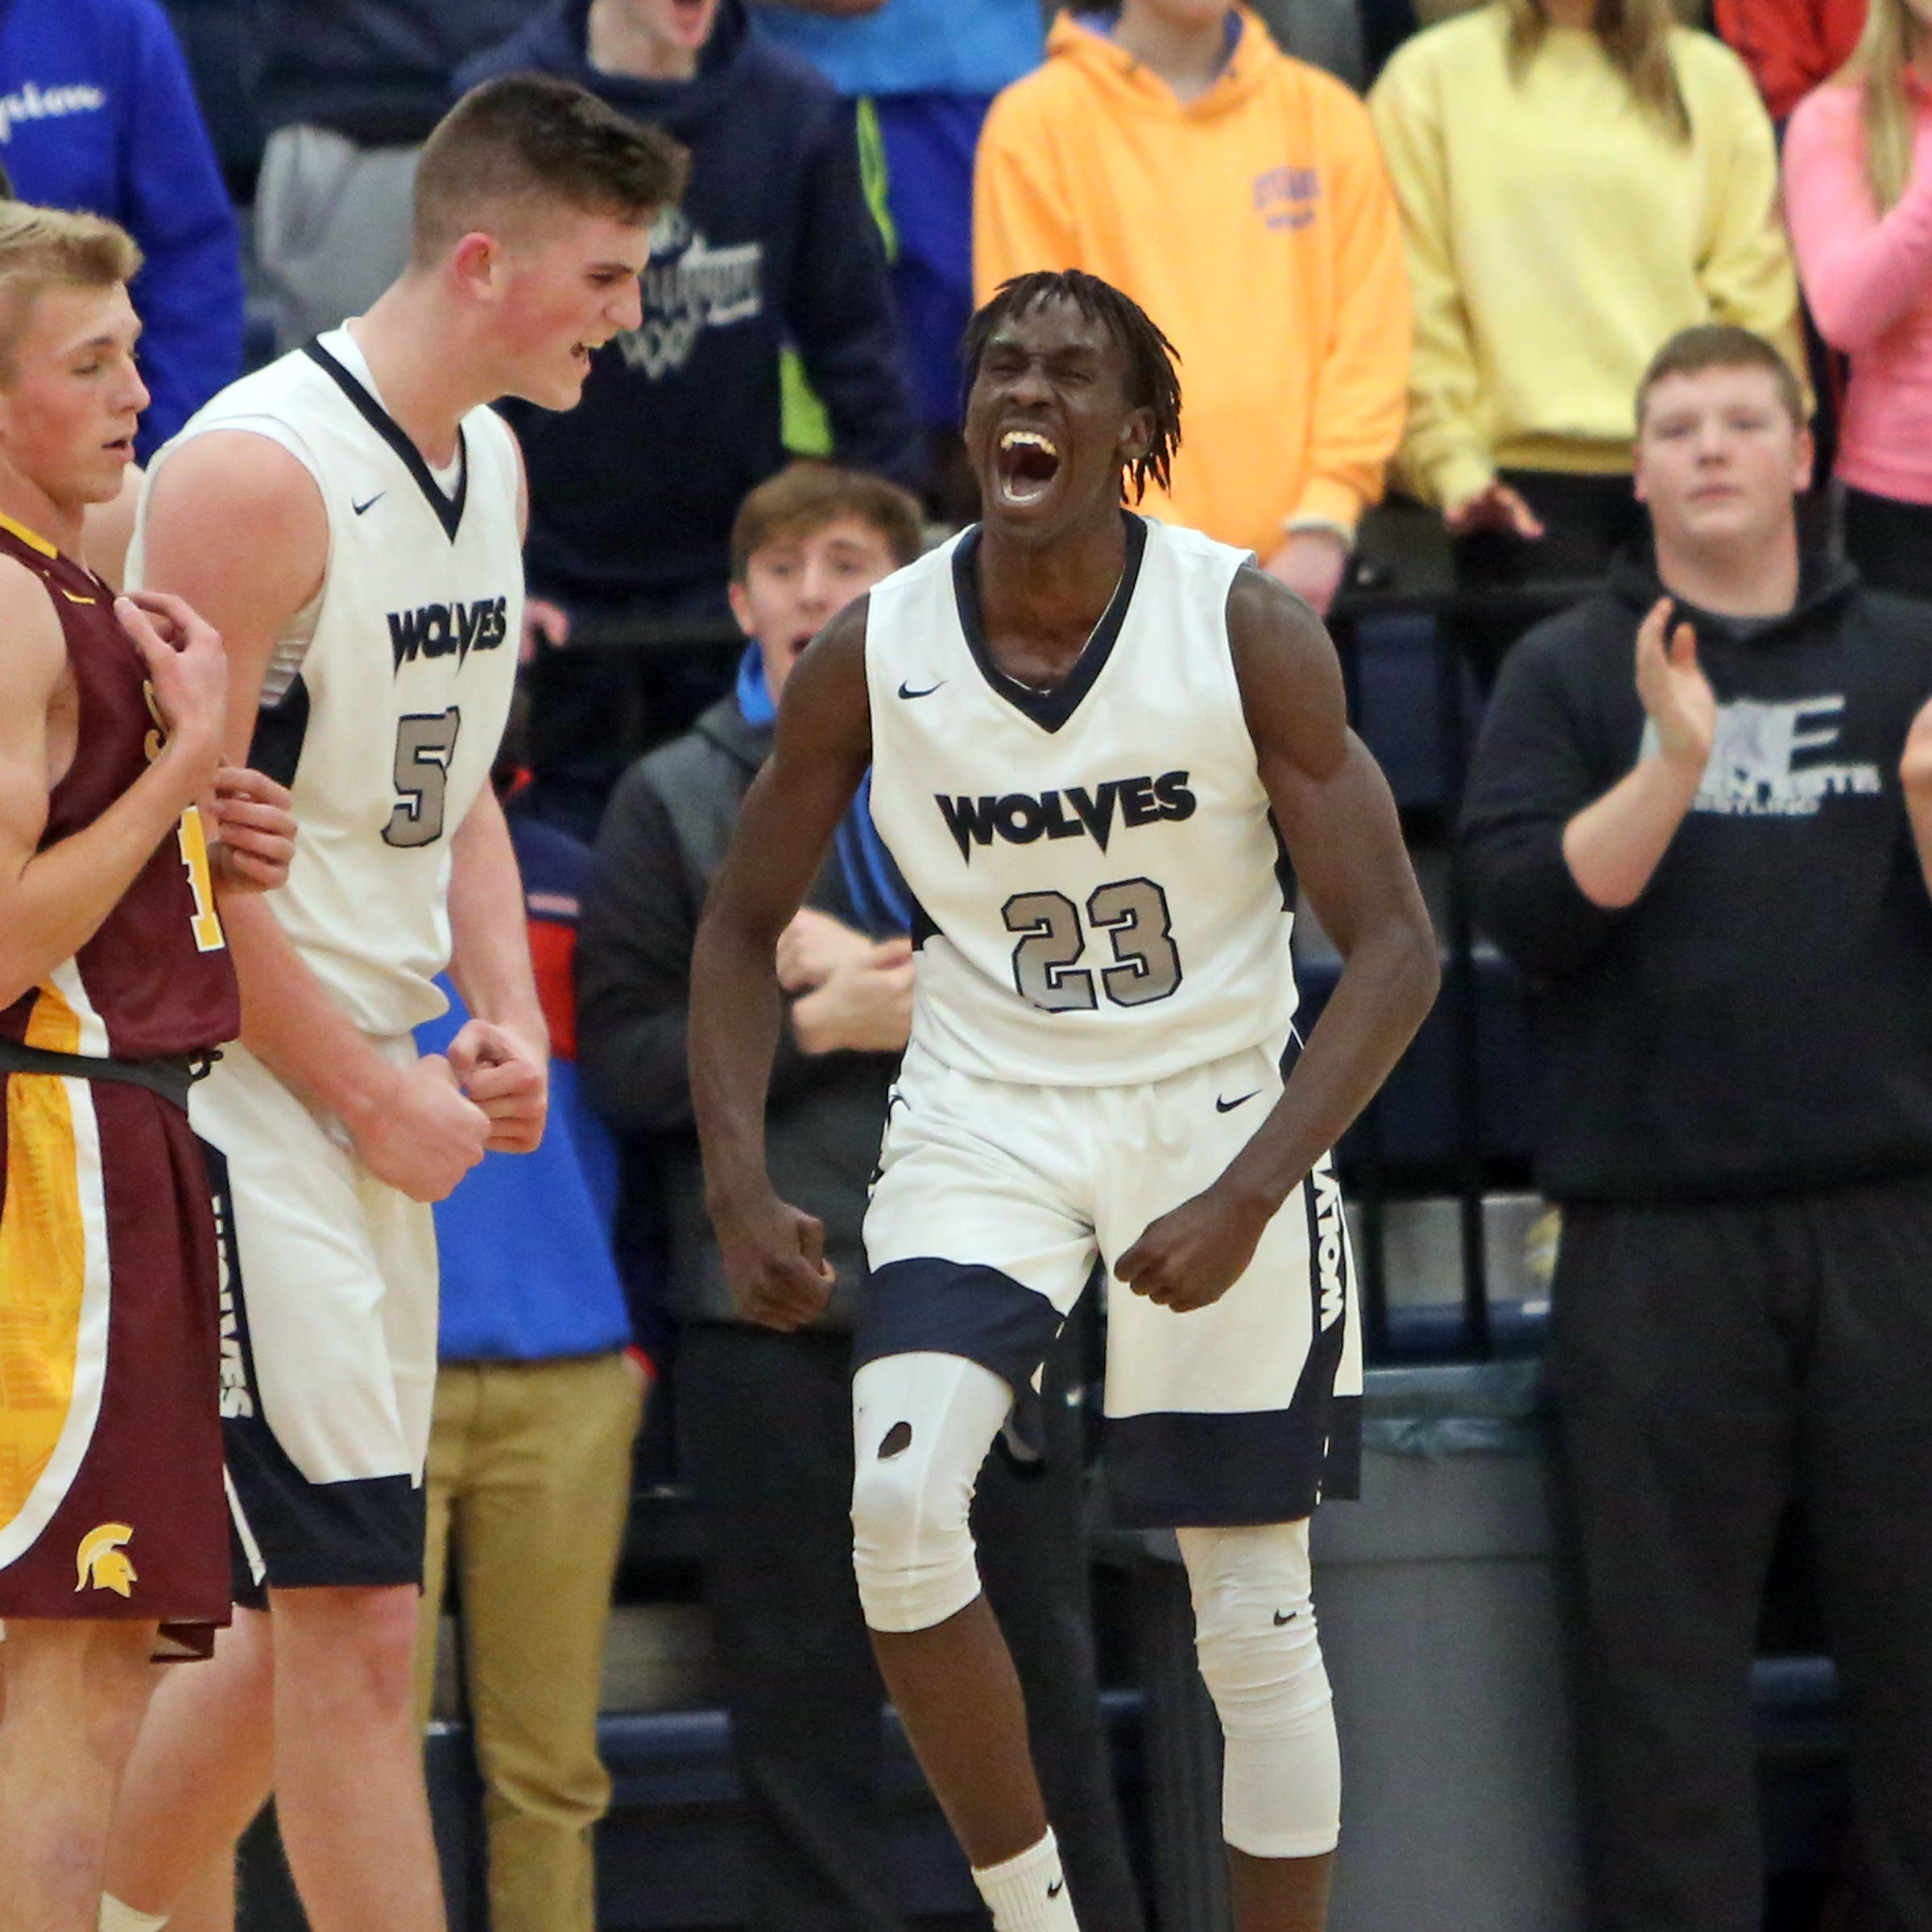 """West Clermont guard Ismail Ismail reacts after getting the """"And 1"""" call."""